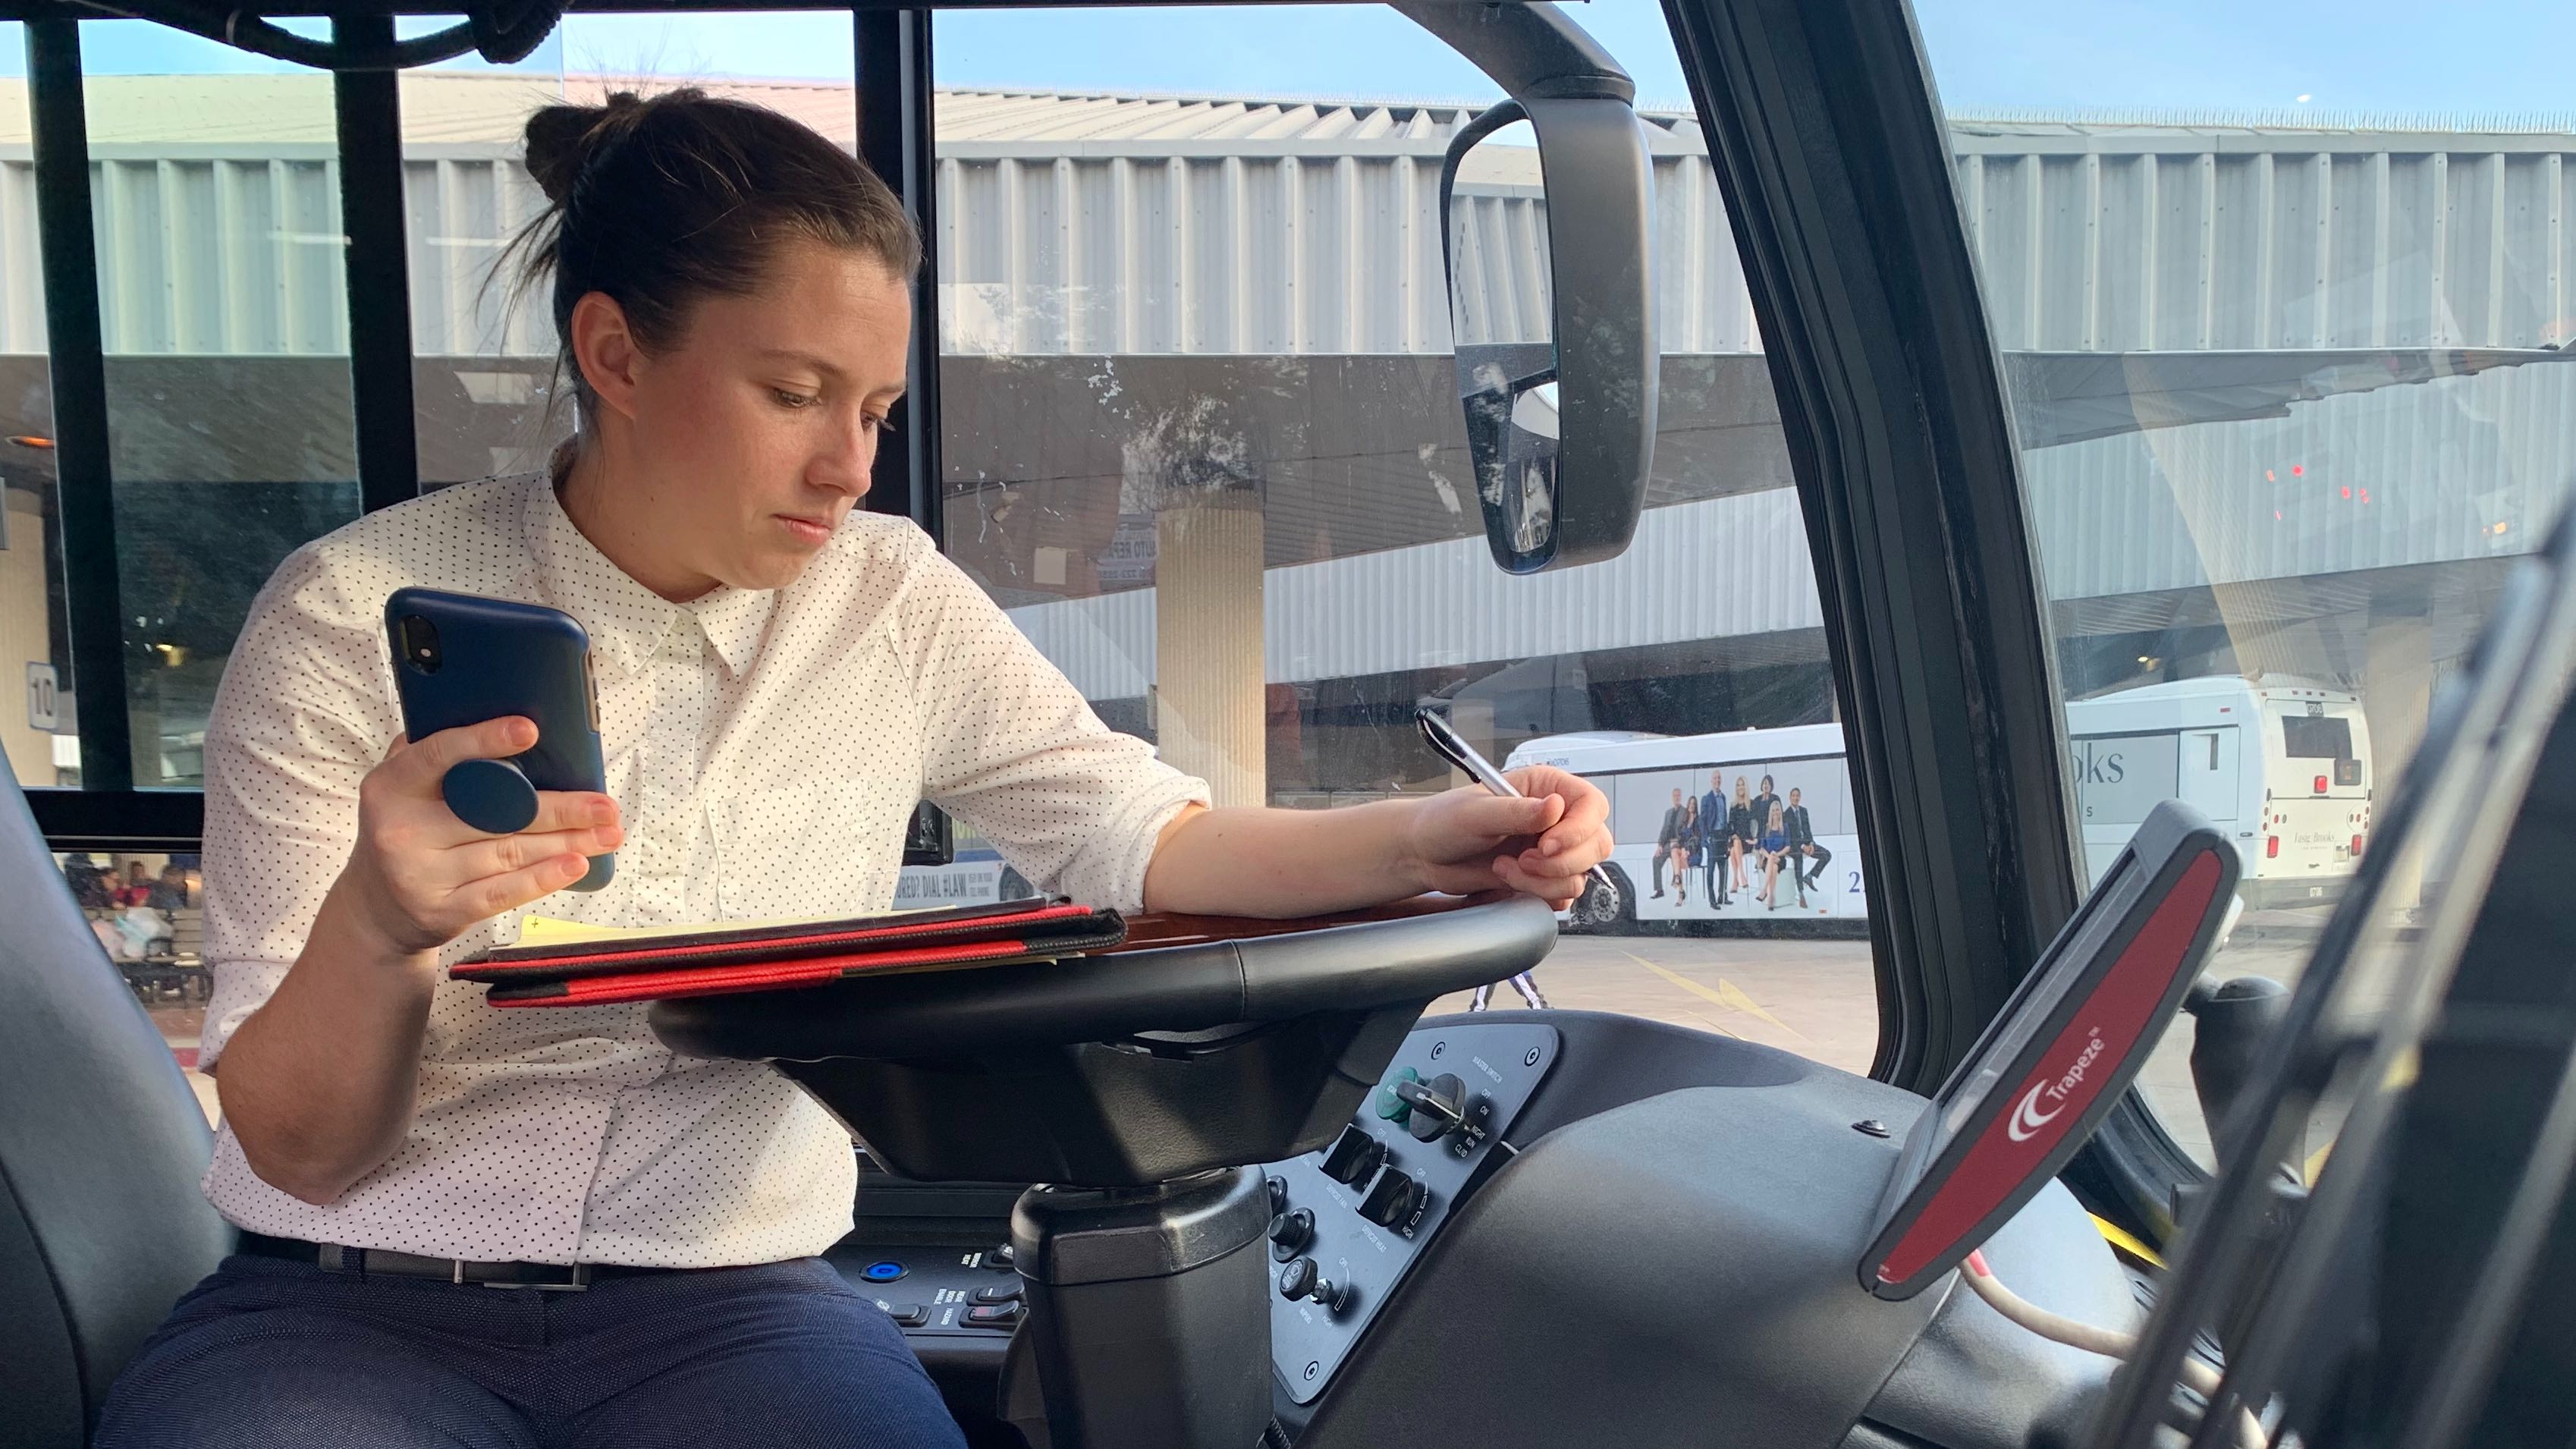 A CTE associate tests a fast charging system to review and monitor the infrastructure supporting the entity's electric buses